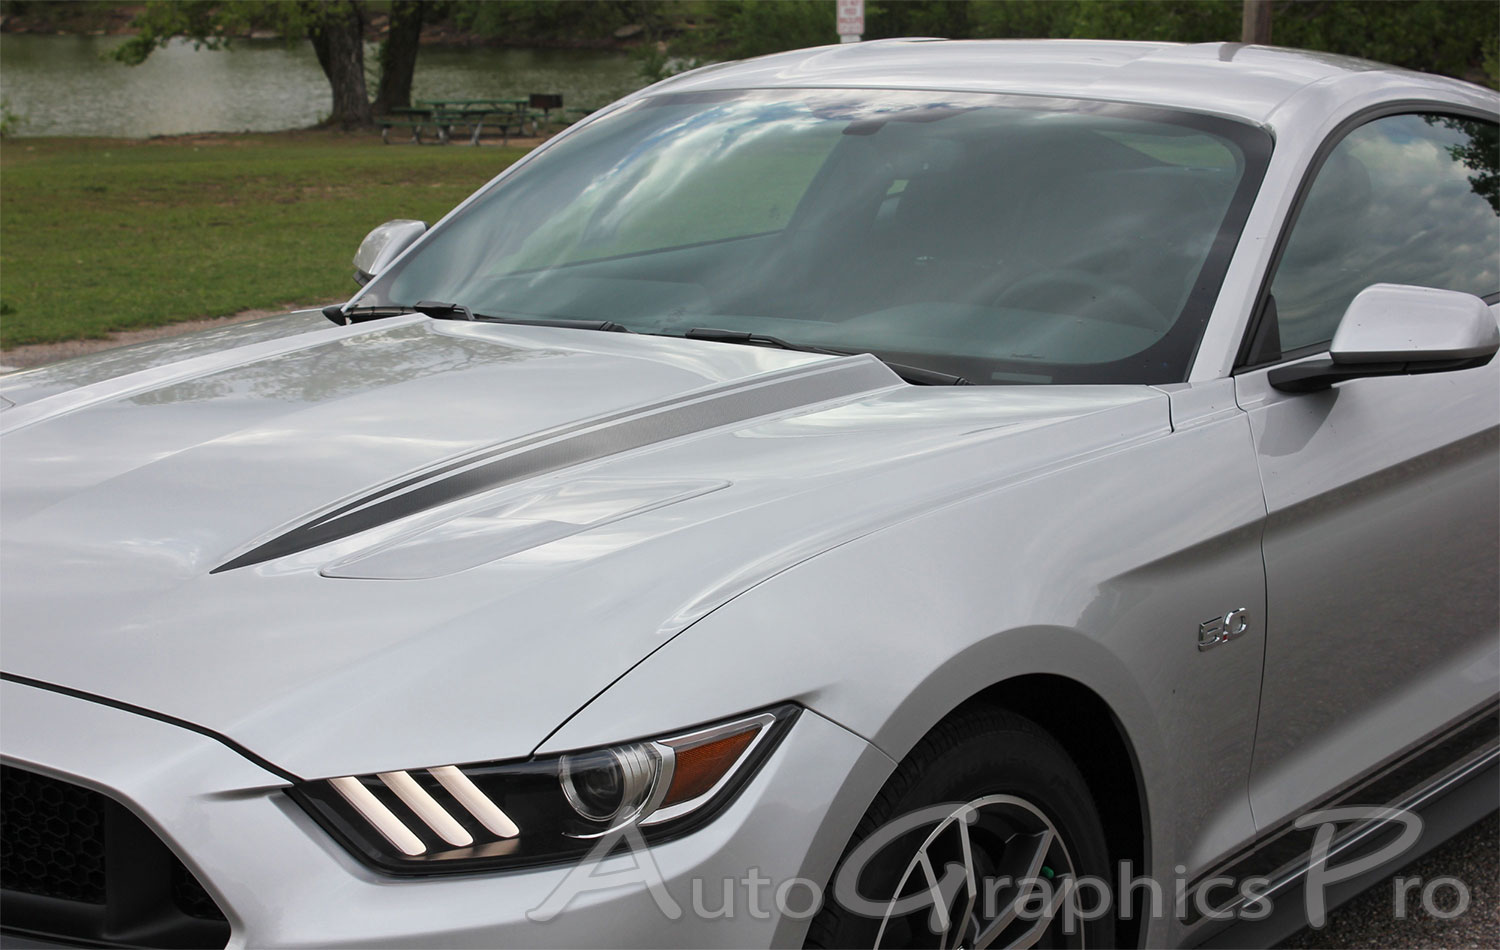 2015 2017 Ford Mustang Digital Faded Hood Spears Gt Cs Style California Special Spikes Factory Oem Stripes Vinyl Decal Graphics